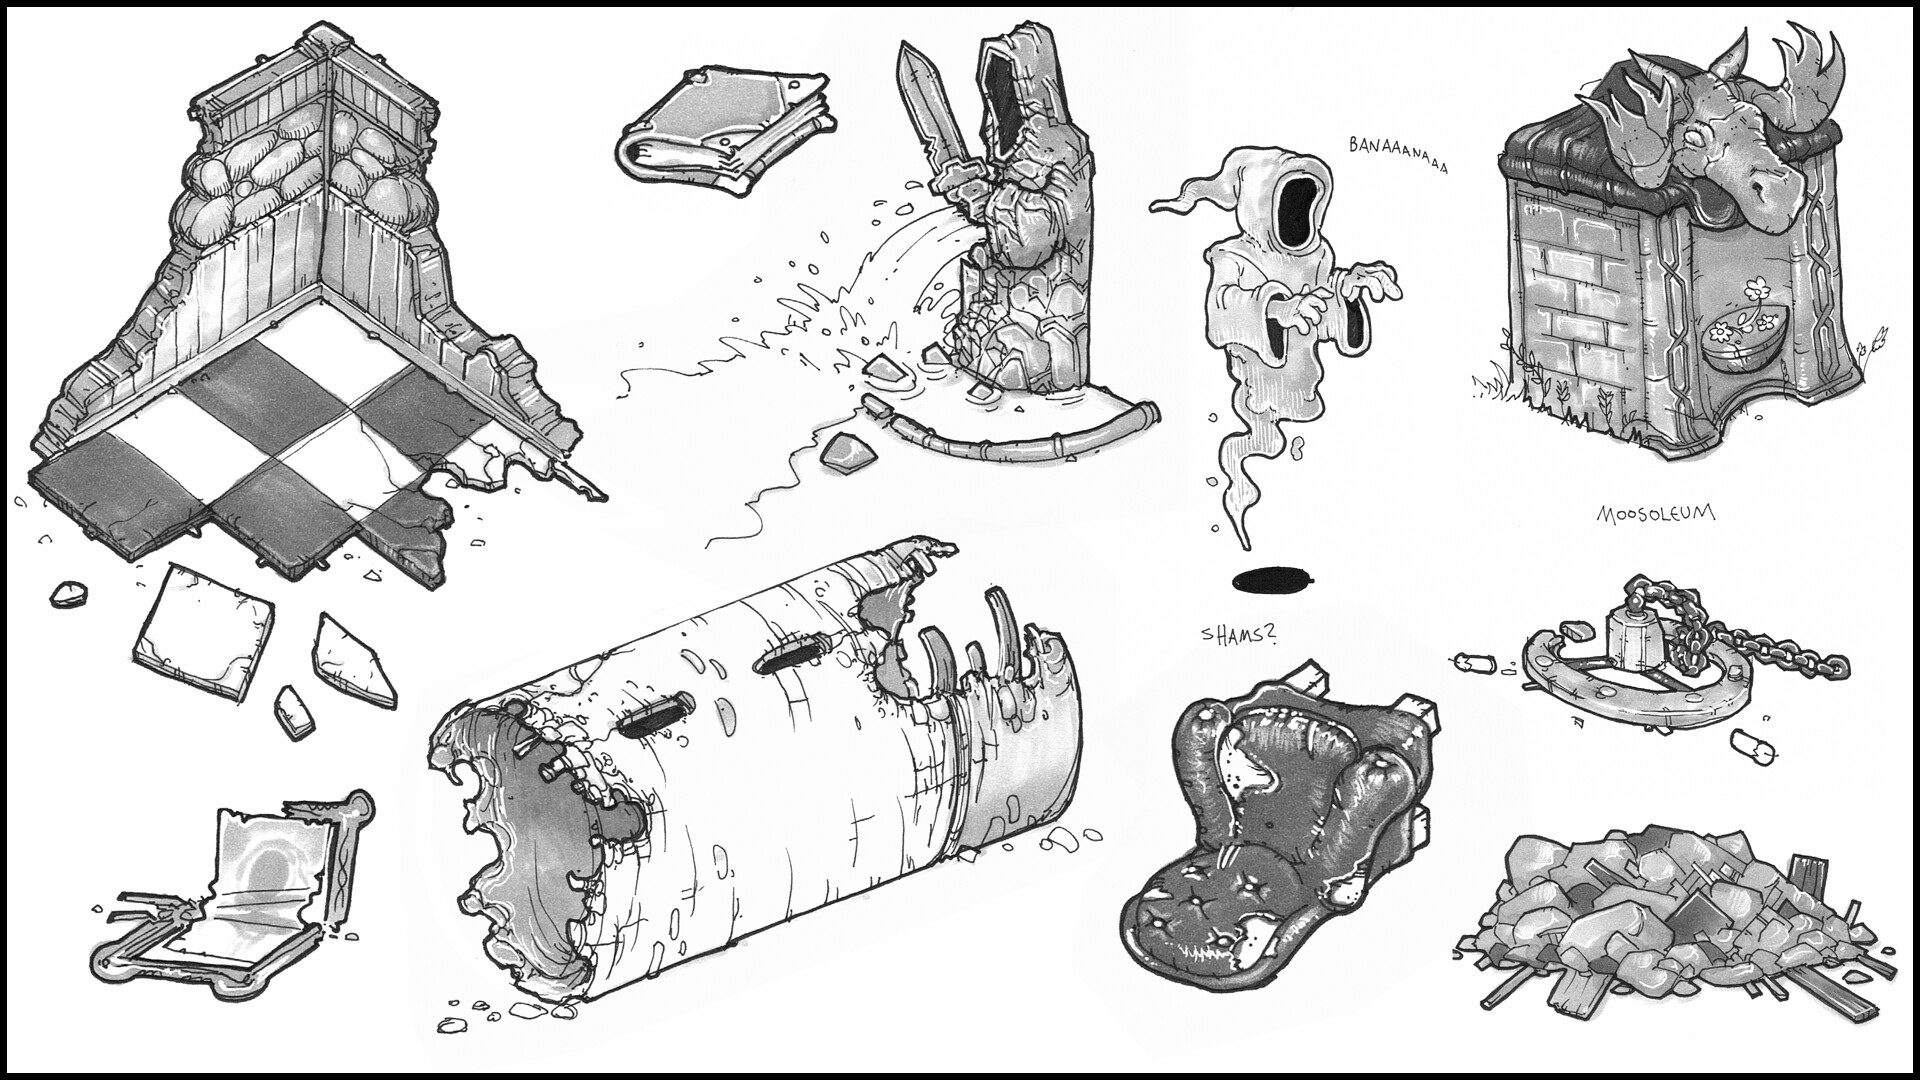 Concepts for various props